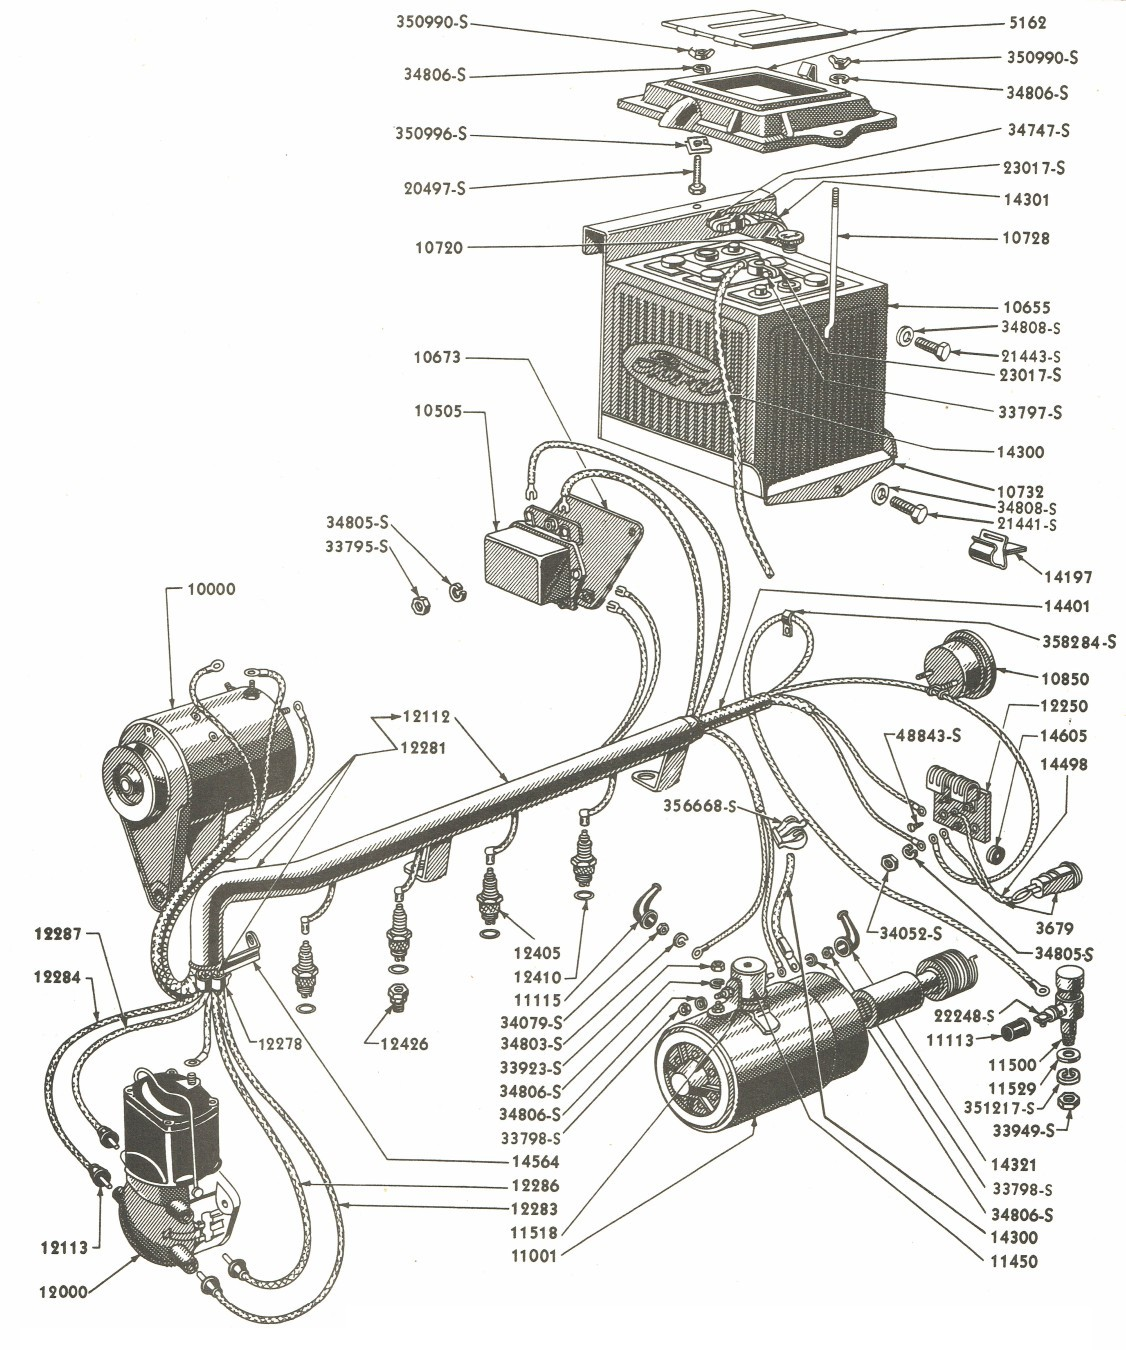 DIAGRAM] Wiring Diagram For Ford 600 Tractor FULL Version HD Quality 600  Tractor - LOVEDIAGRAM.CENTROBACHELET.ITcentrobachelet.it